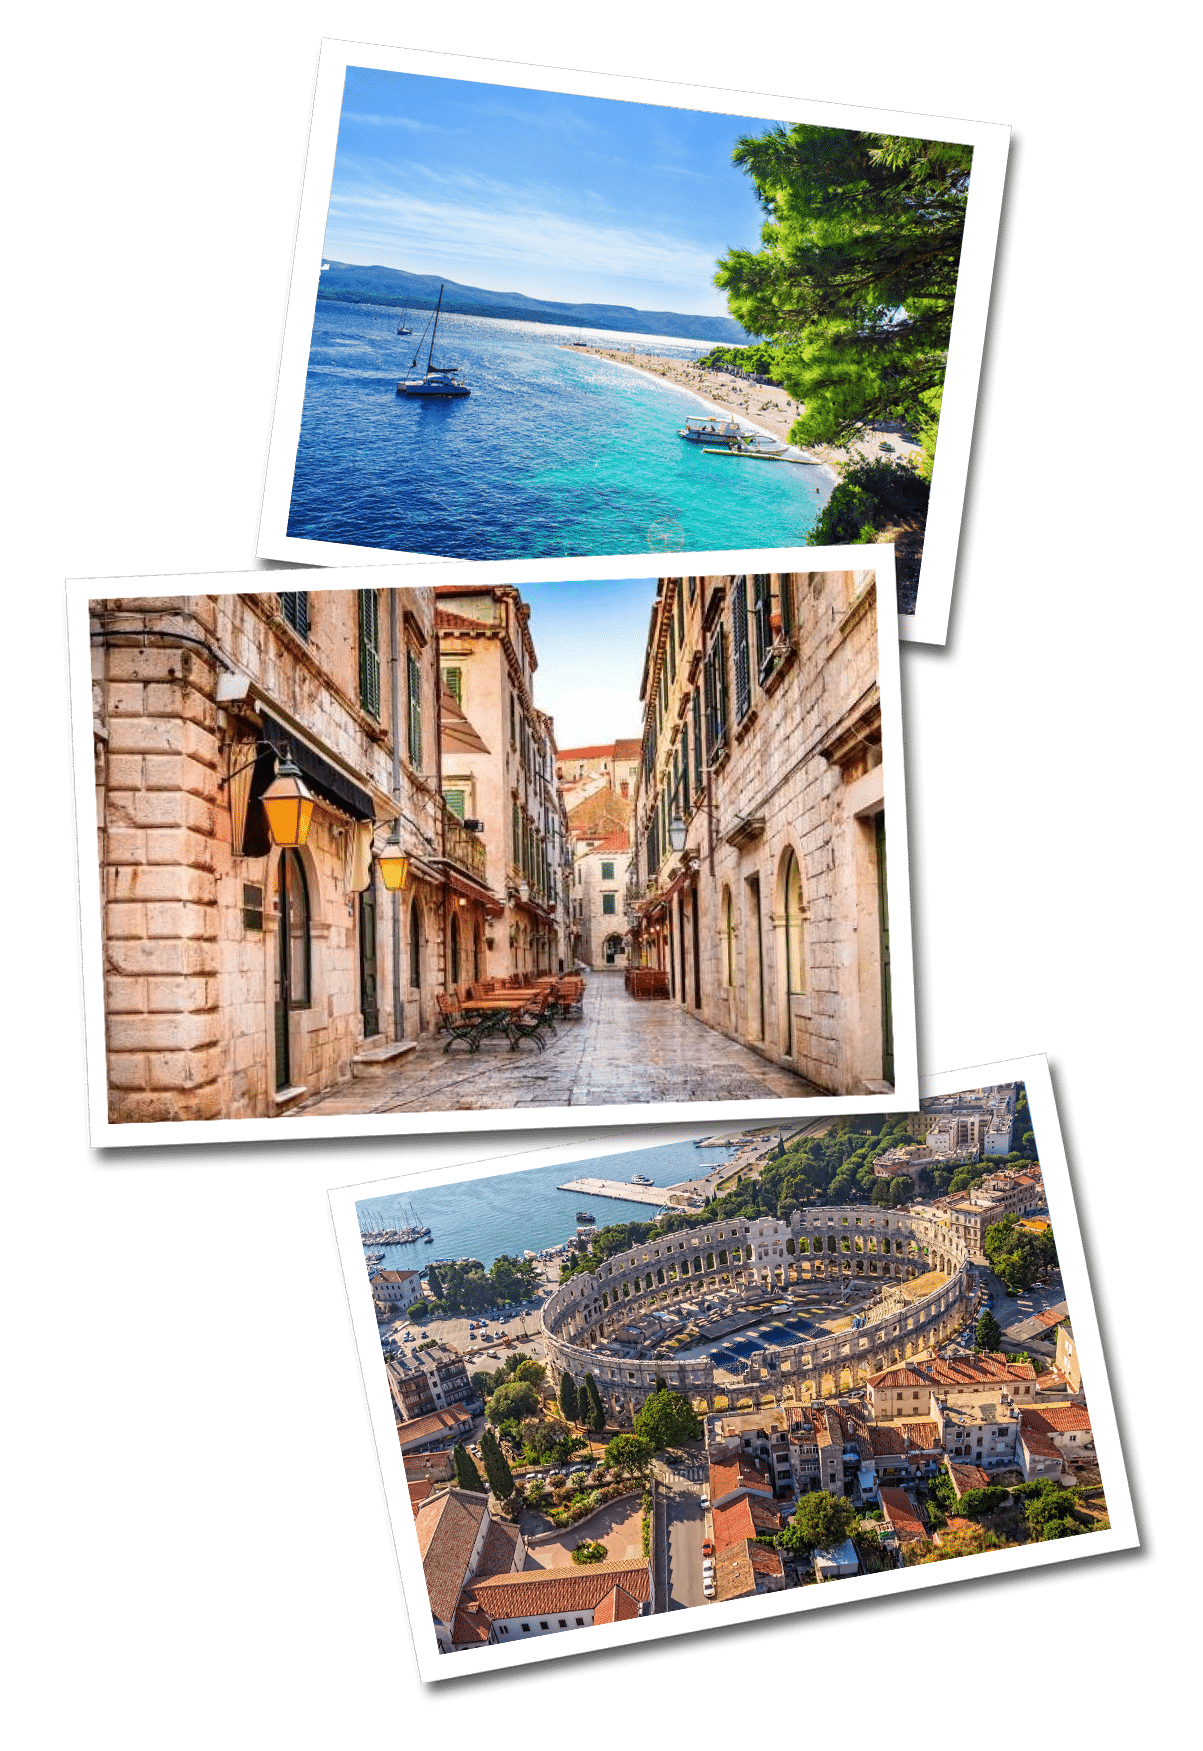 Croatian postcards